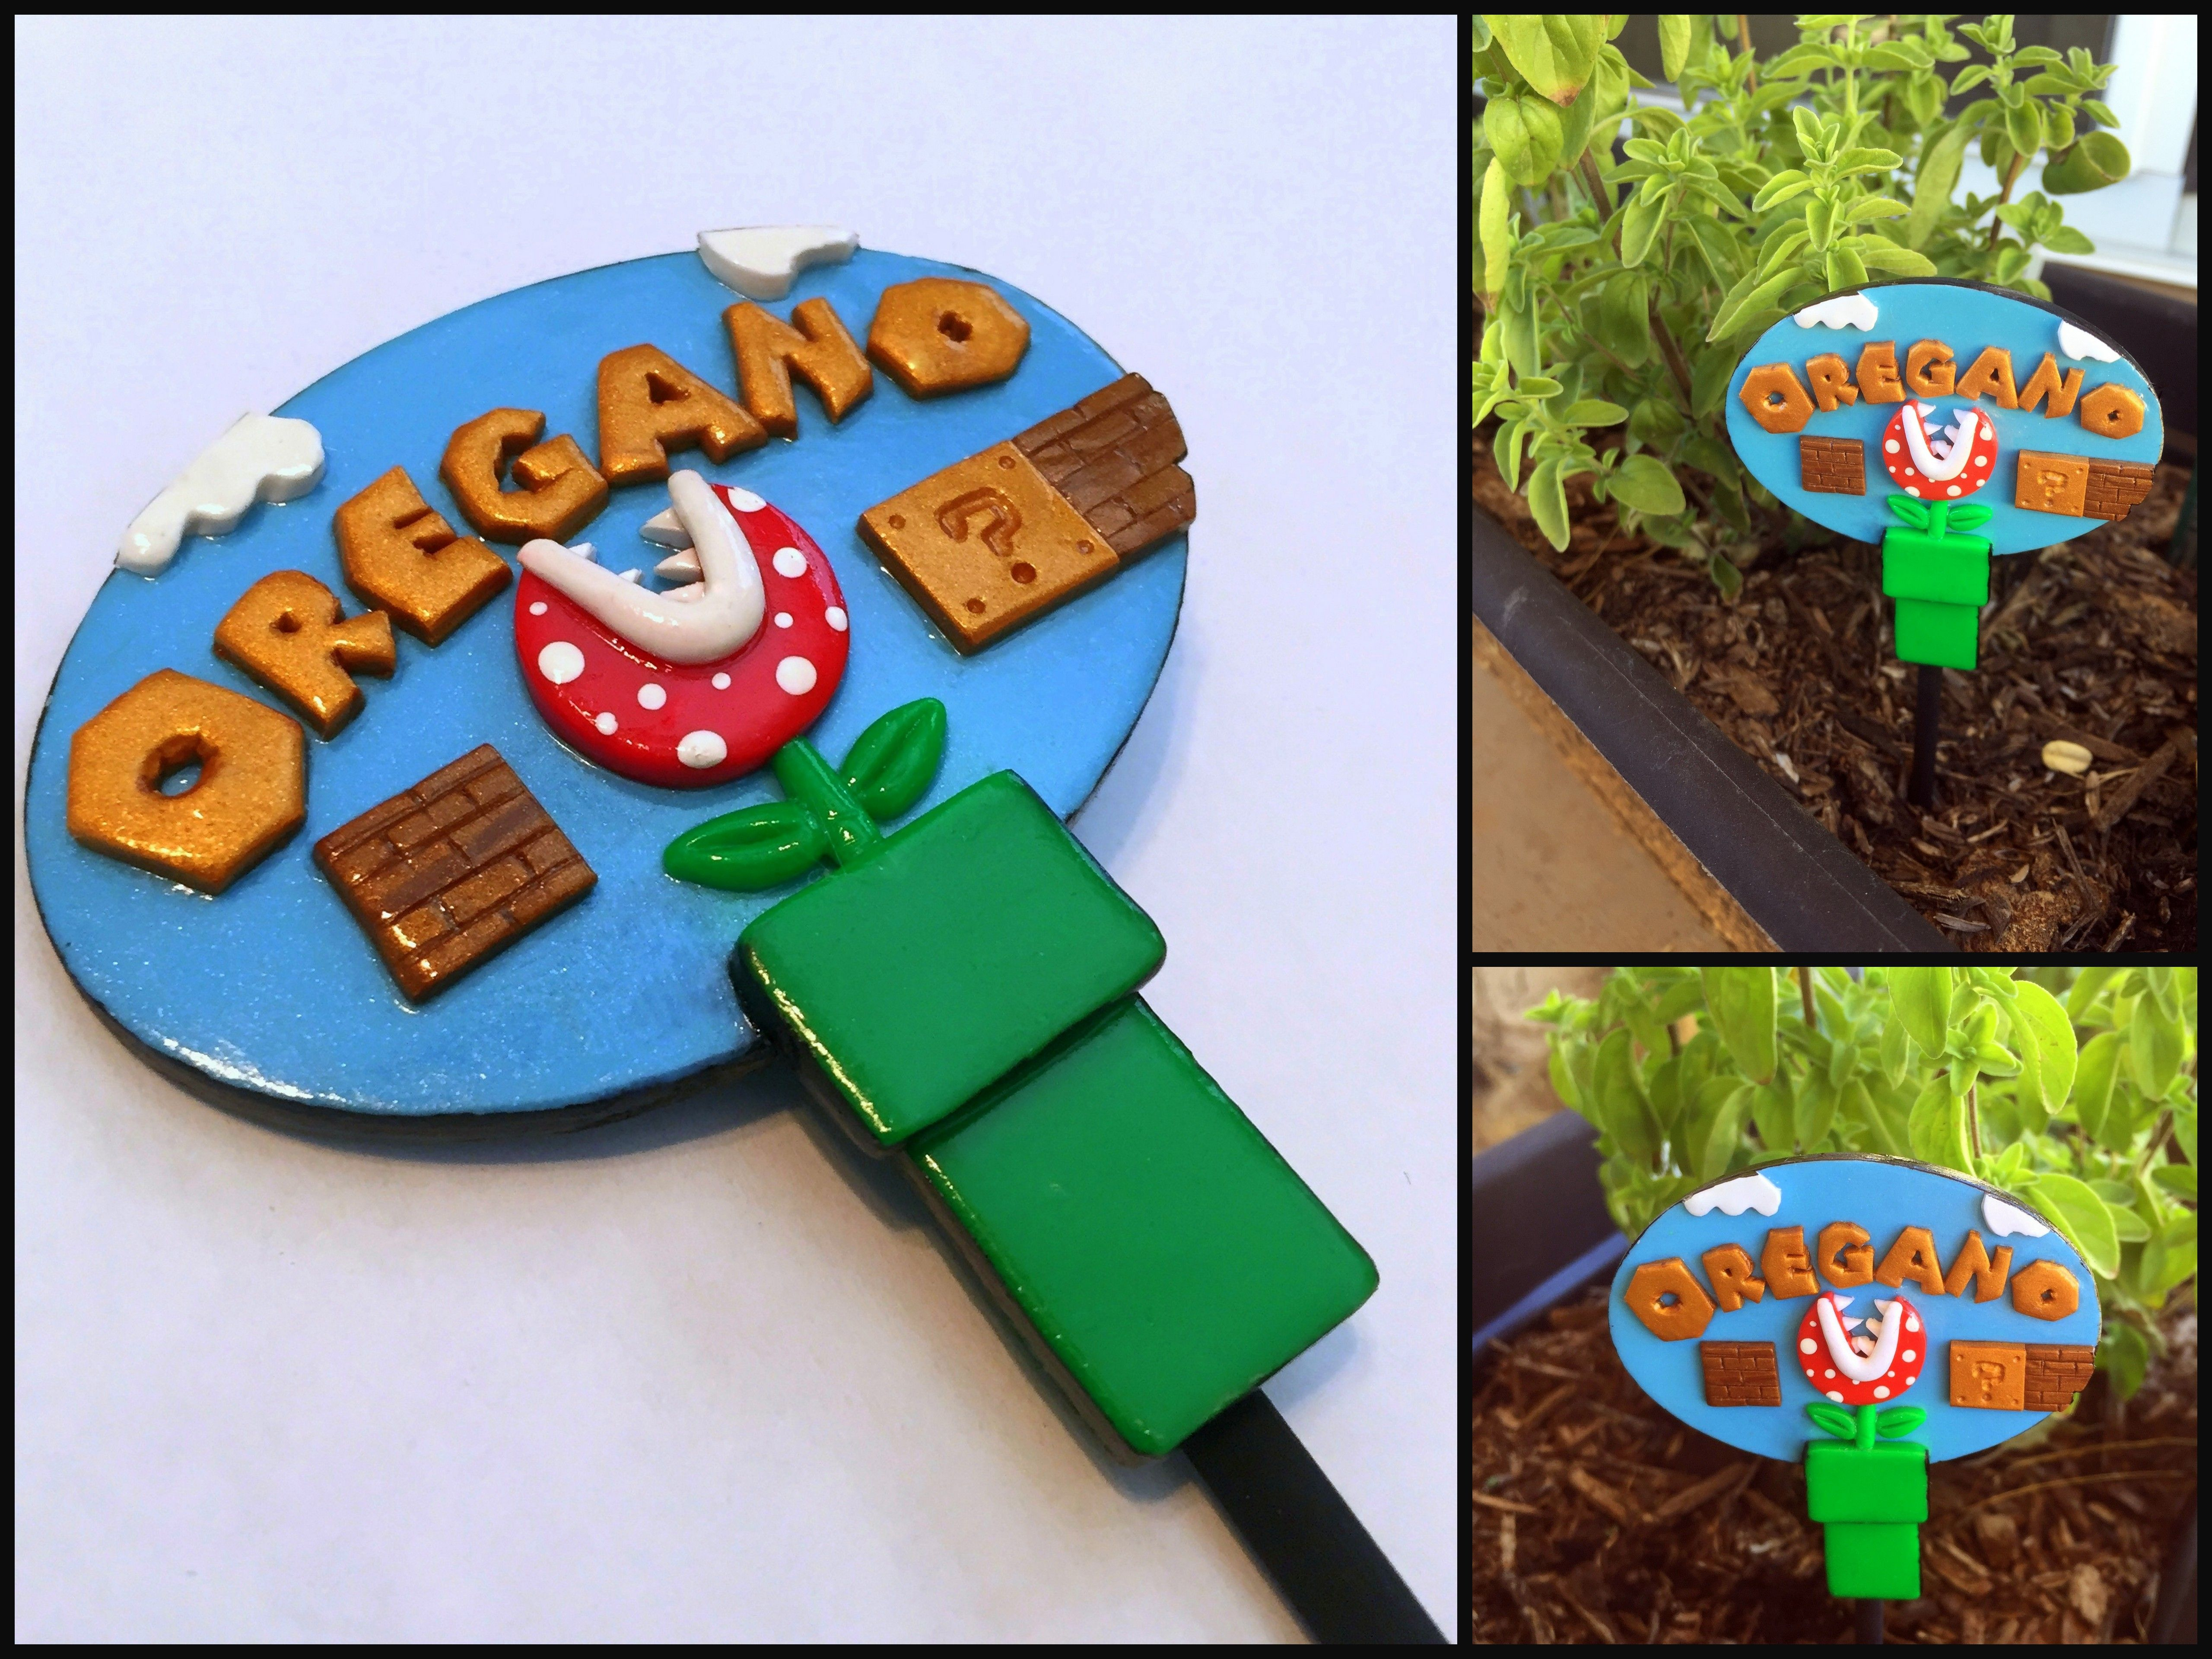 Mario Themed Oregano Garden Marker by Elven Star Clayworks - The Pavelka Project 2015